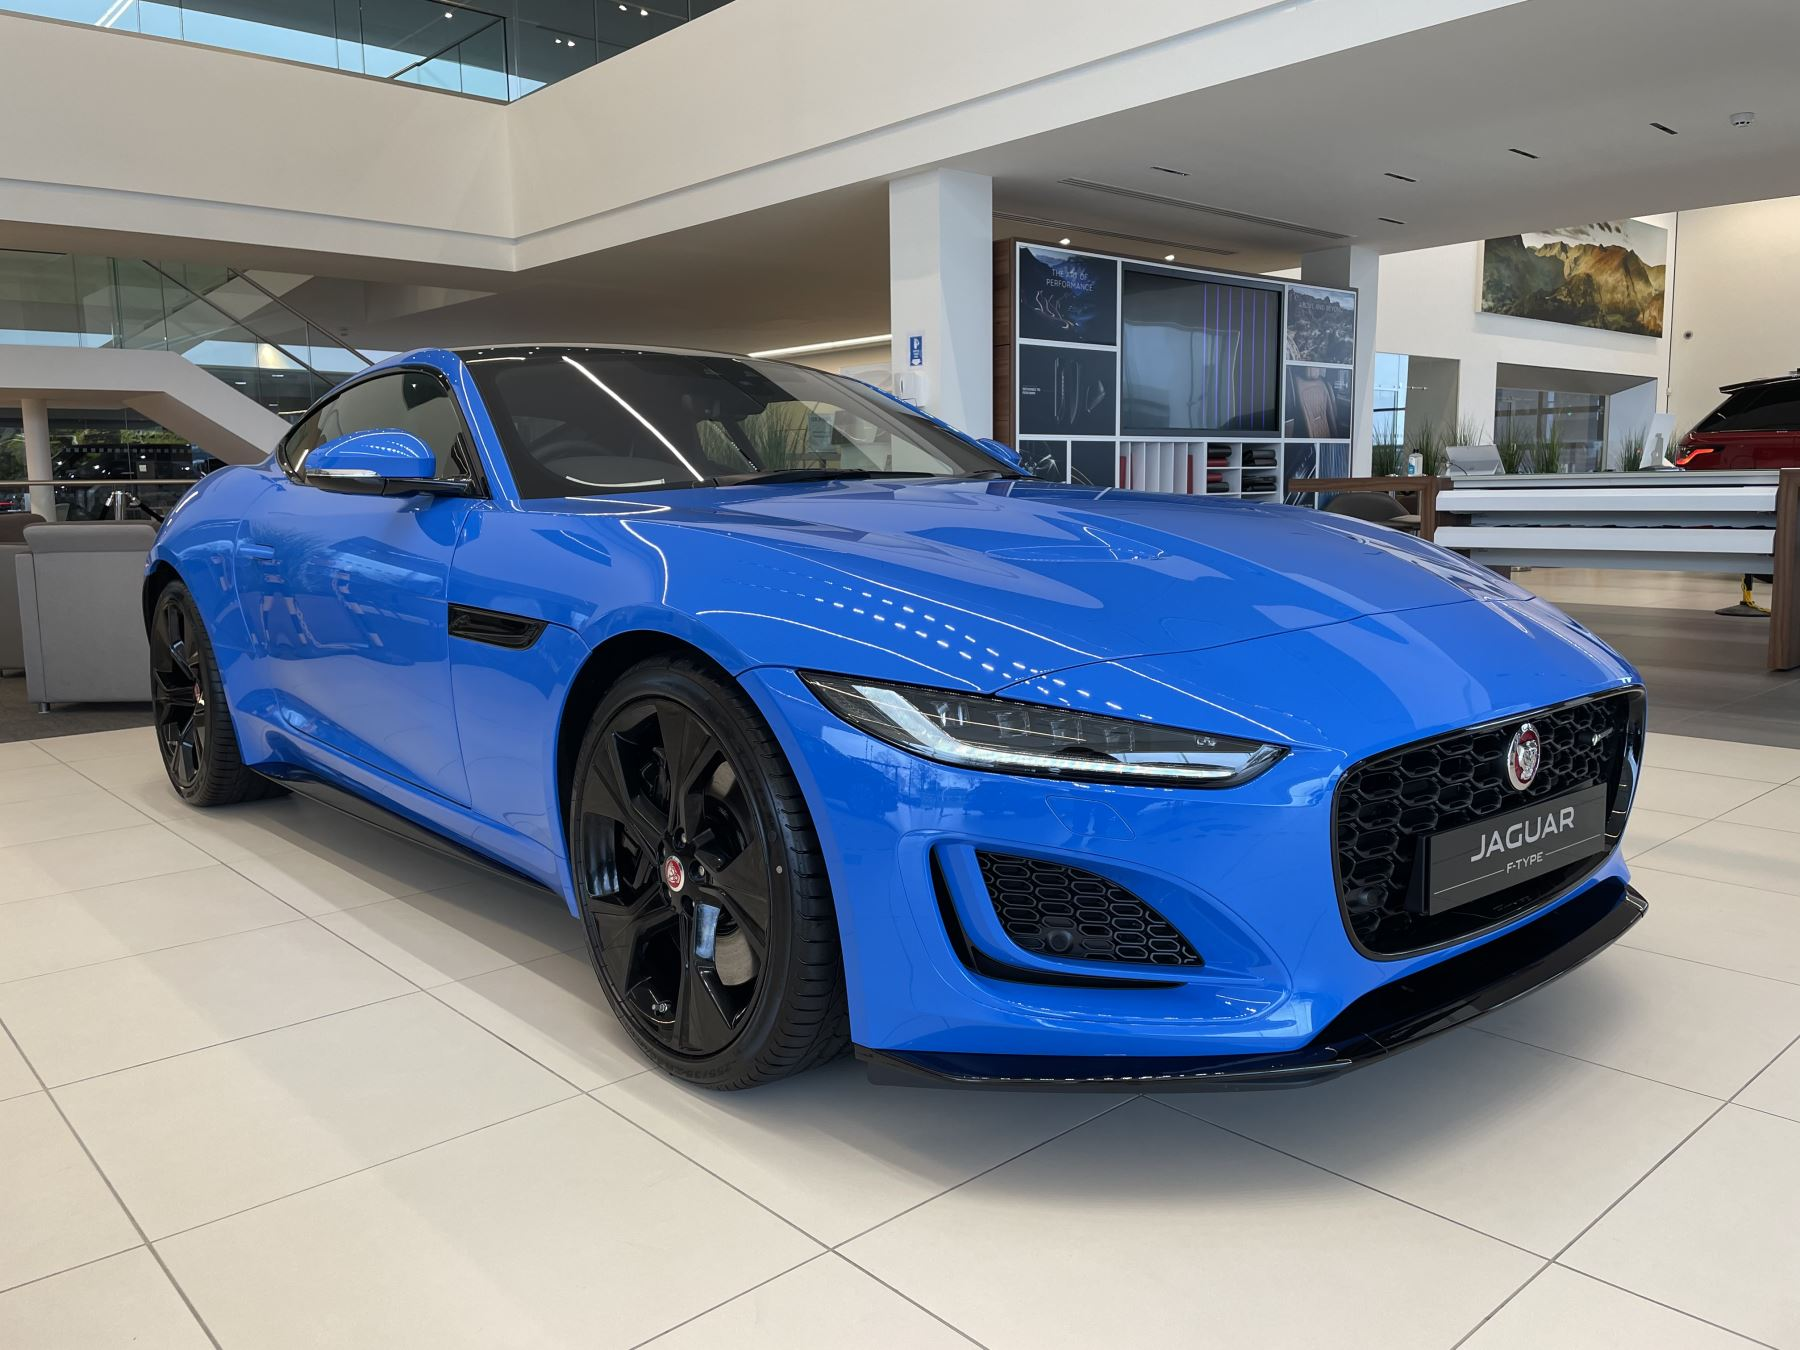 Jaguar F-TYPE 5.0 P450 Supercharged V8 Reims Edition 2dr Auto image 1